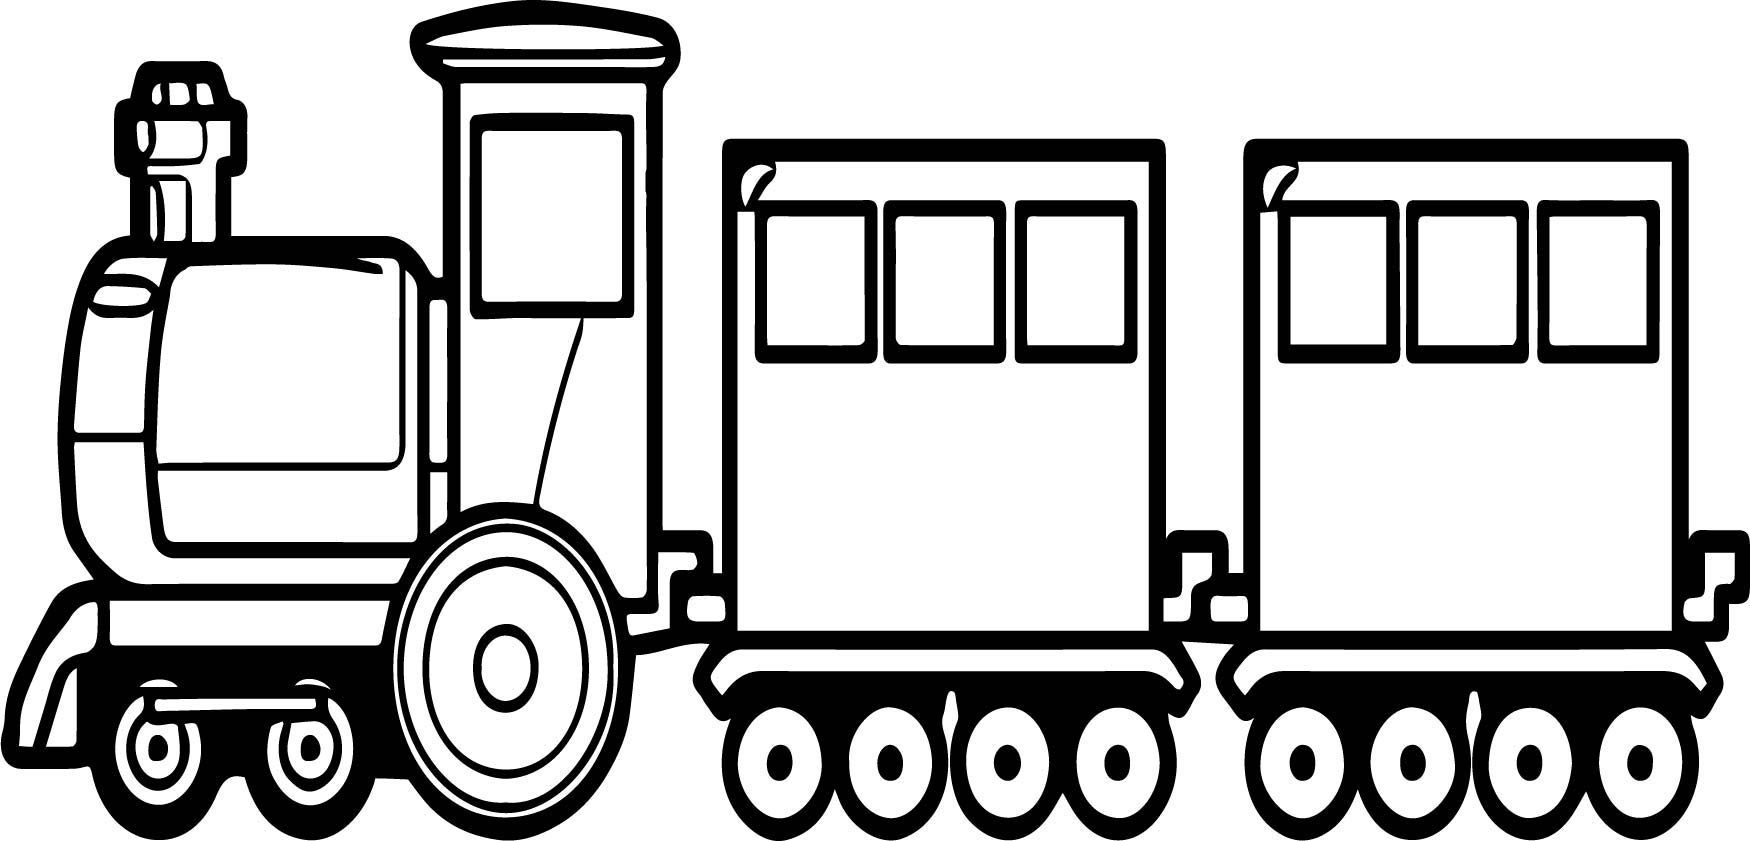 trains coloring pages train coloring pages getcoloringpagescom trains pages coloring